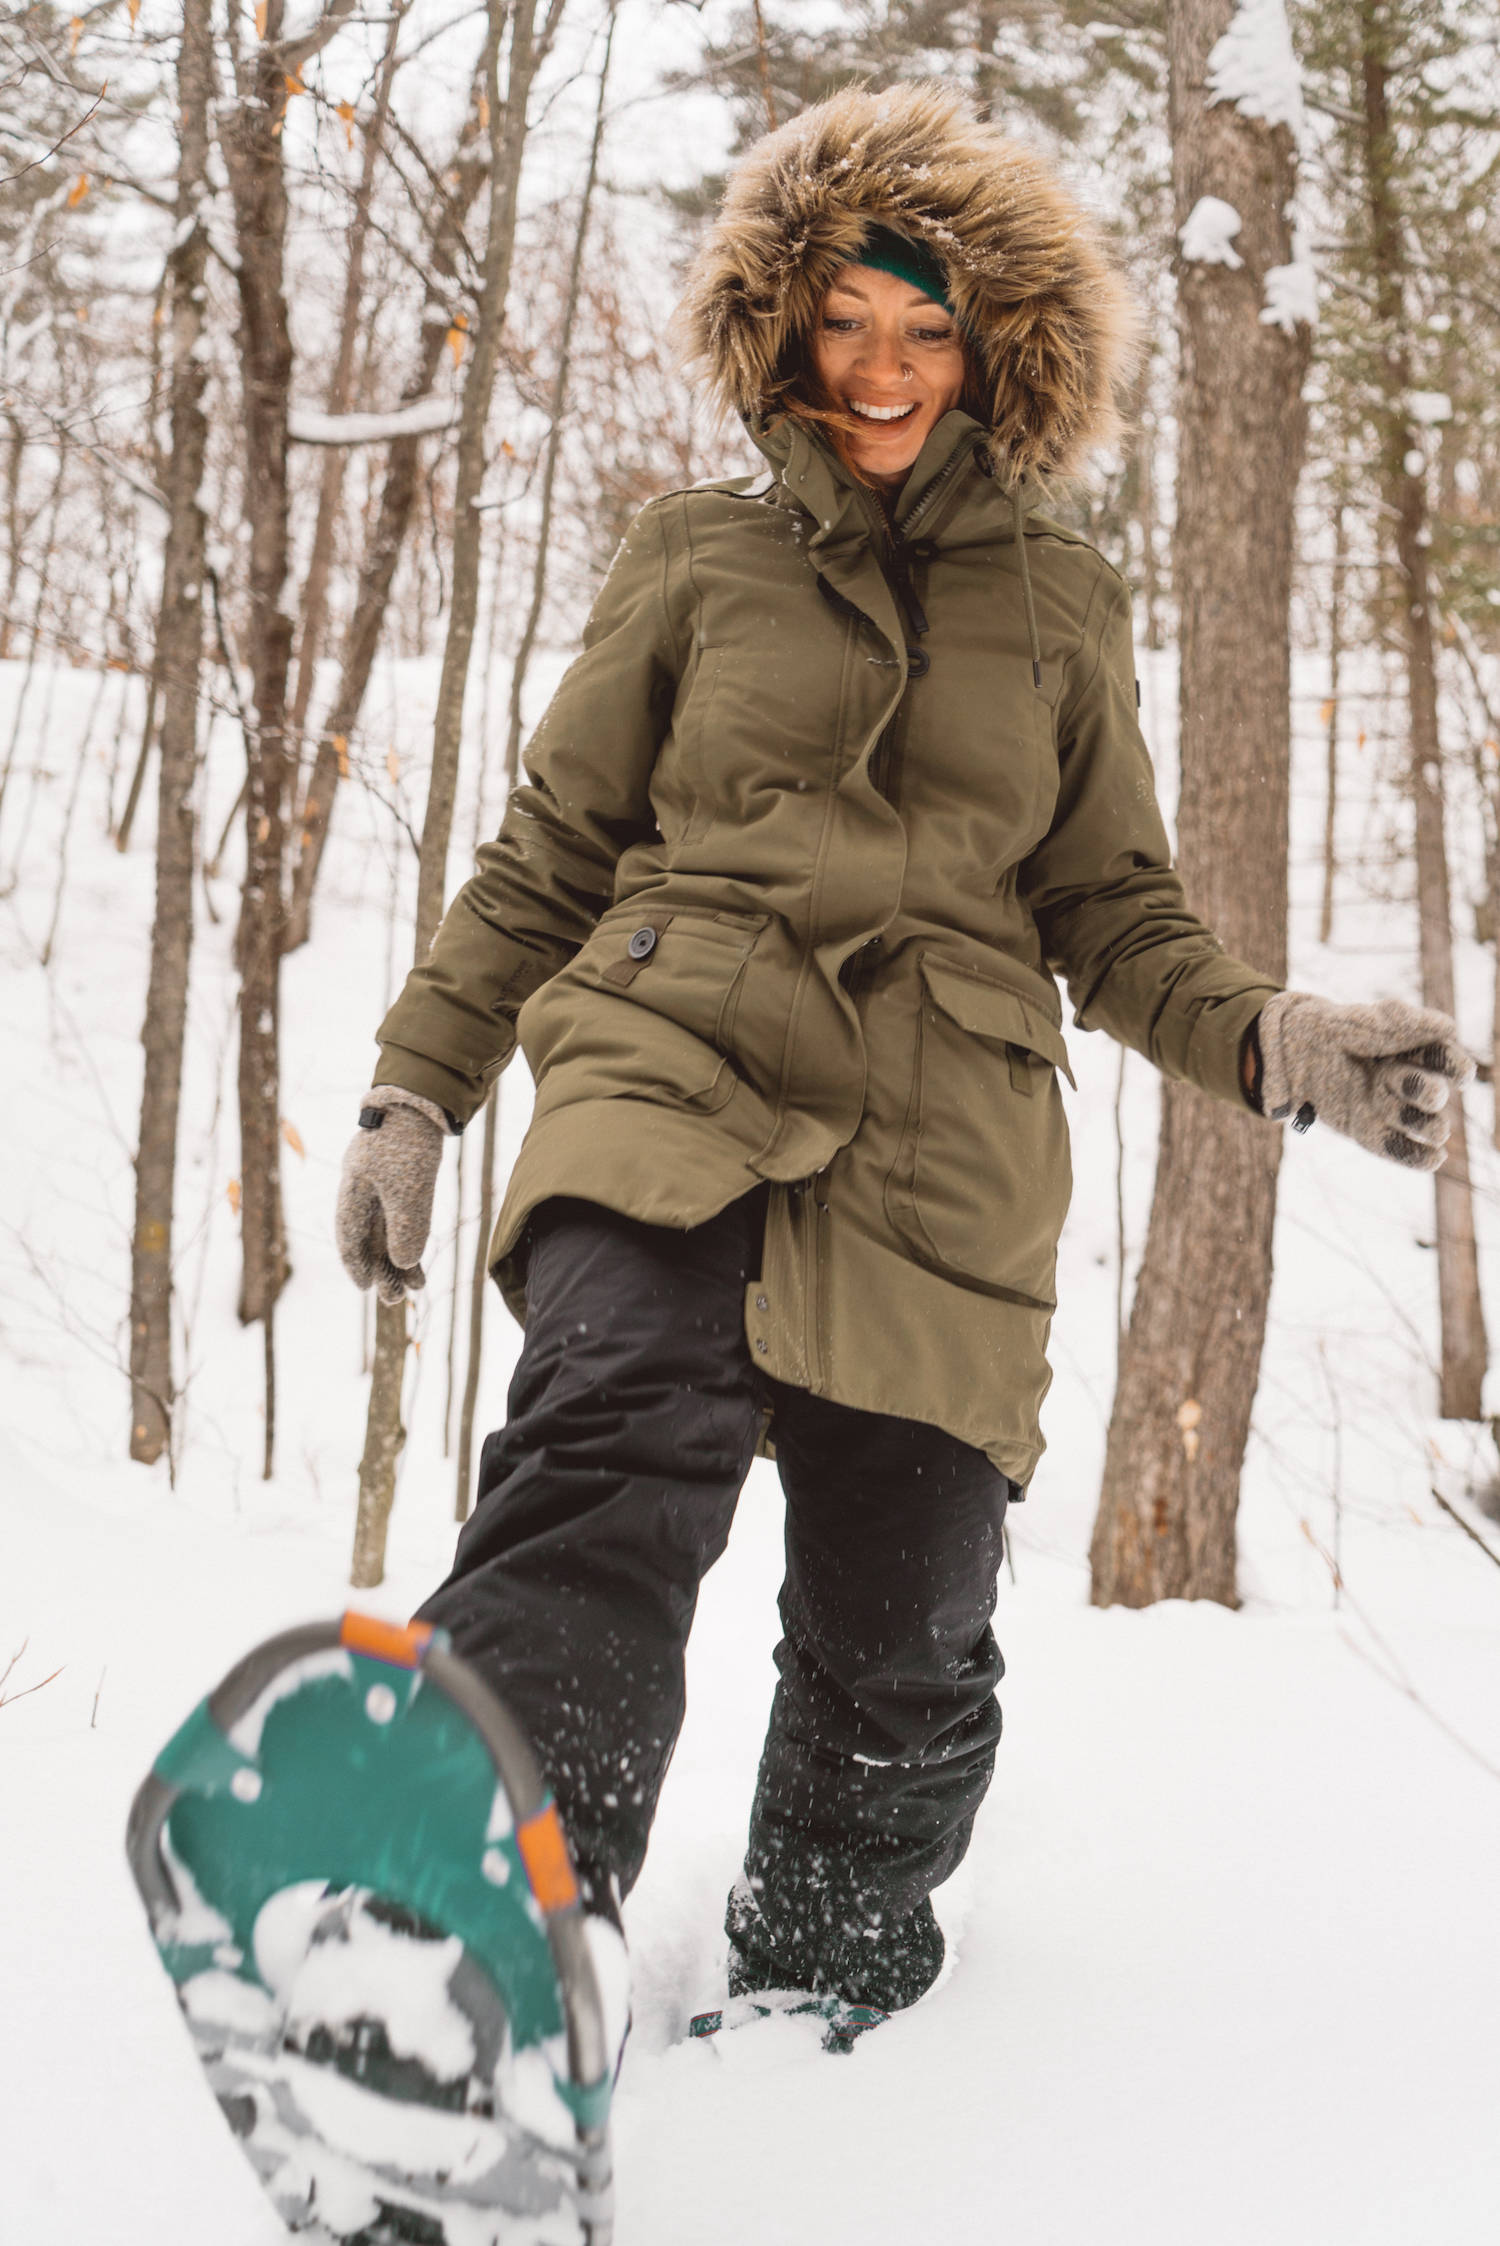 Snow shoeing in Ontario Canada